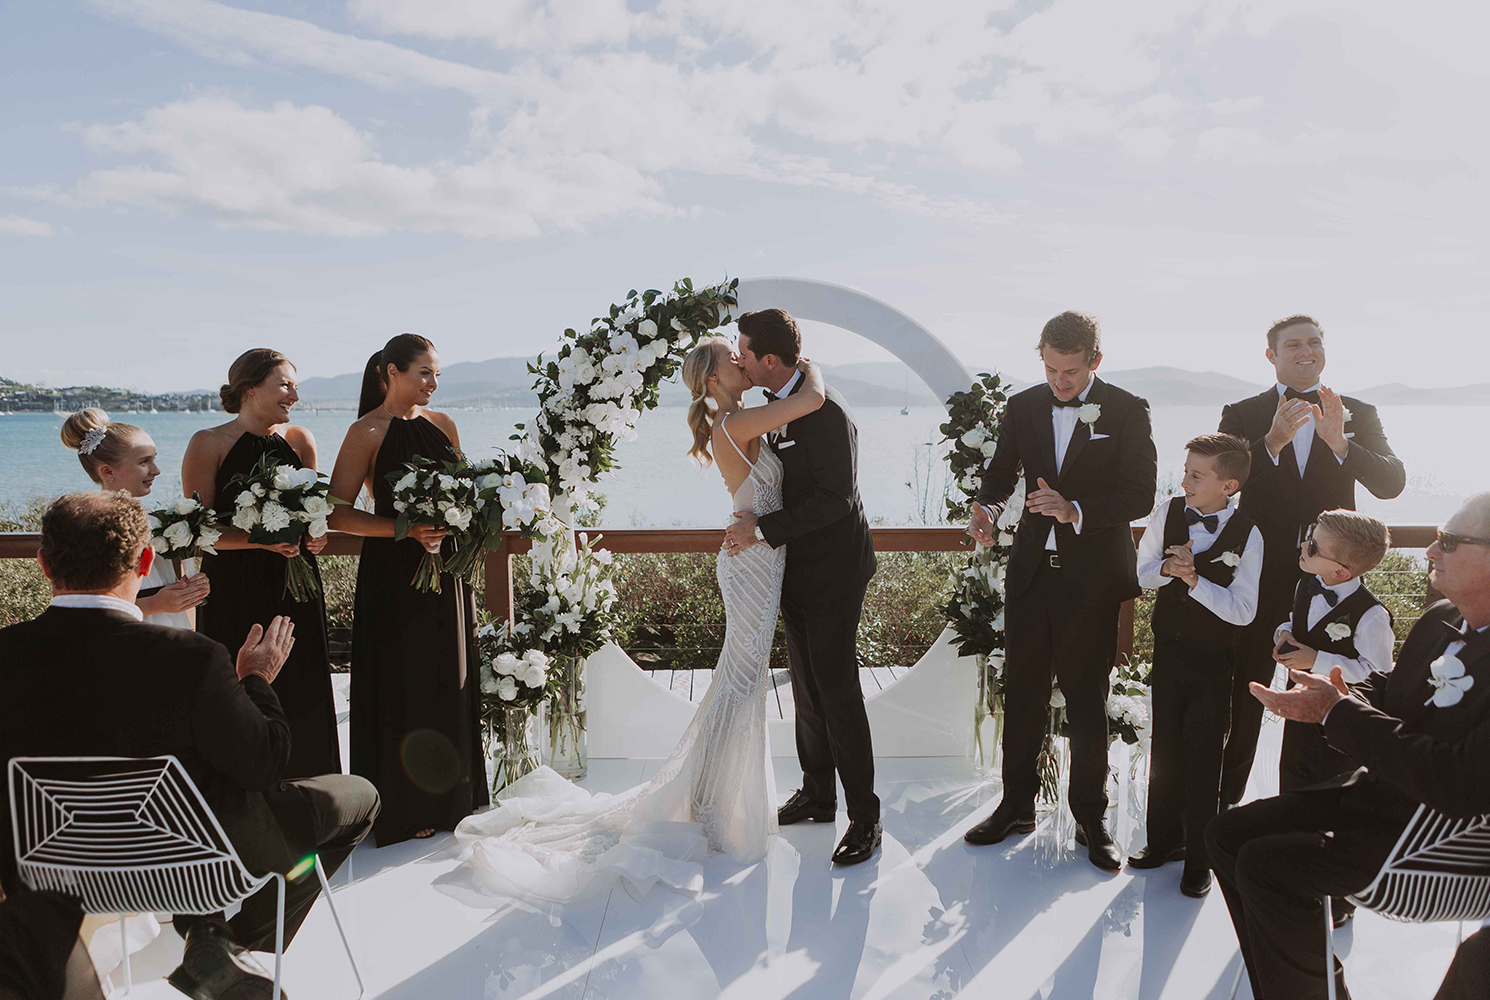 real-wedding-jess-jake-airlie-beach-destination-mandalay-mansion-kiss-couple-ceremony-circle-arch